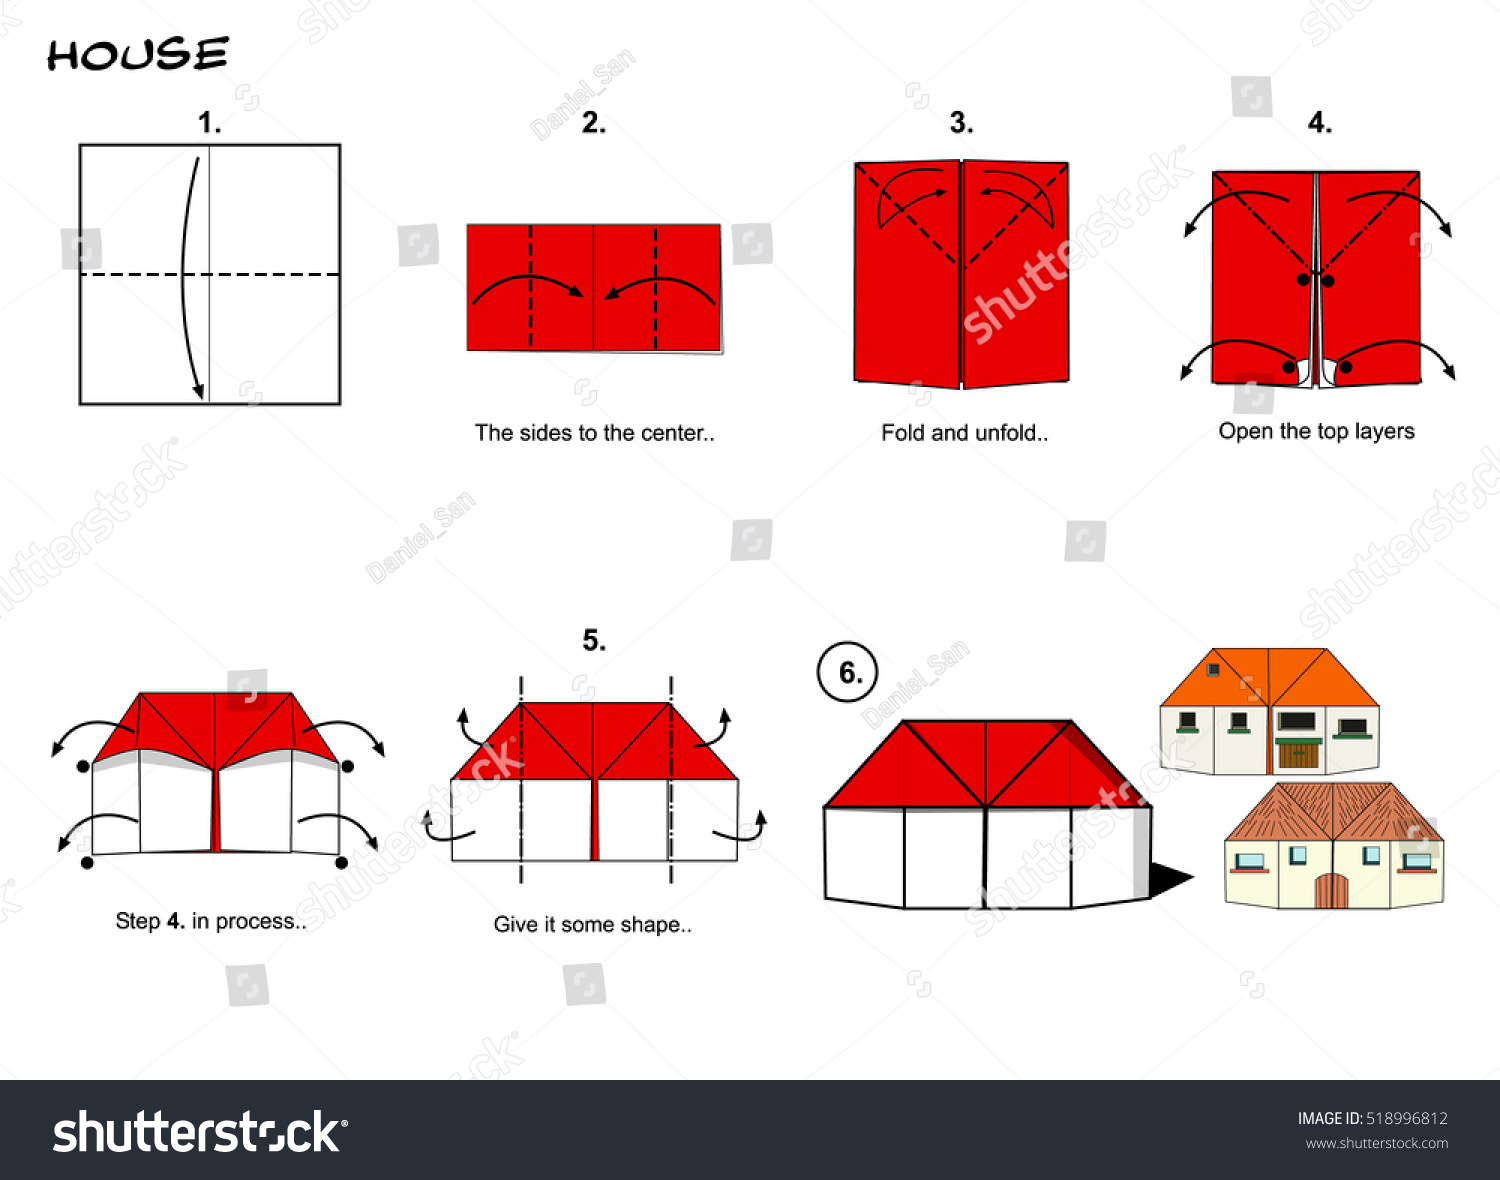 Origami house instructions steps